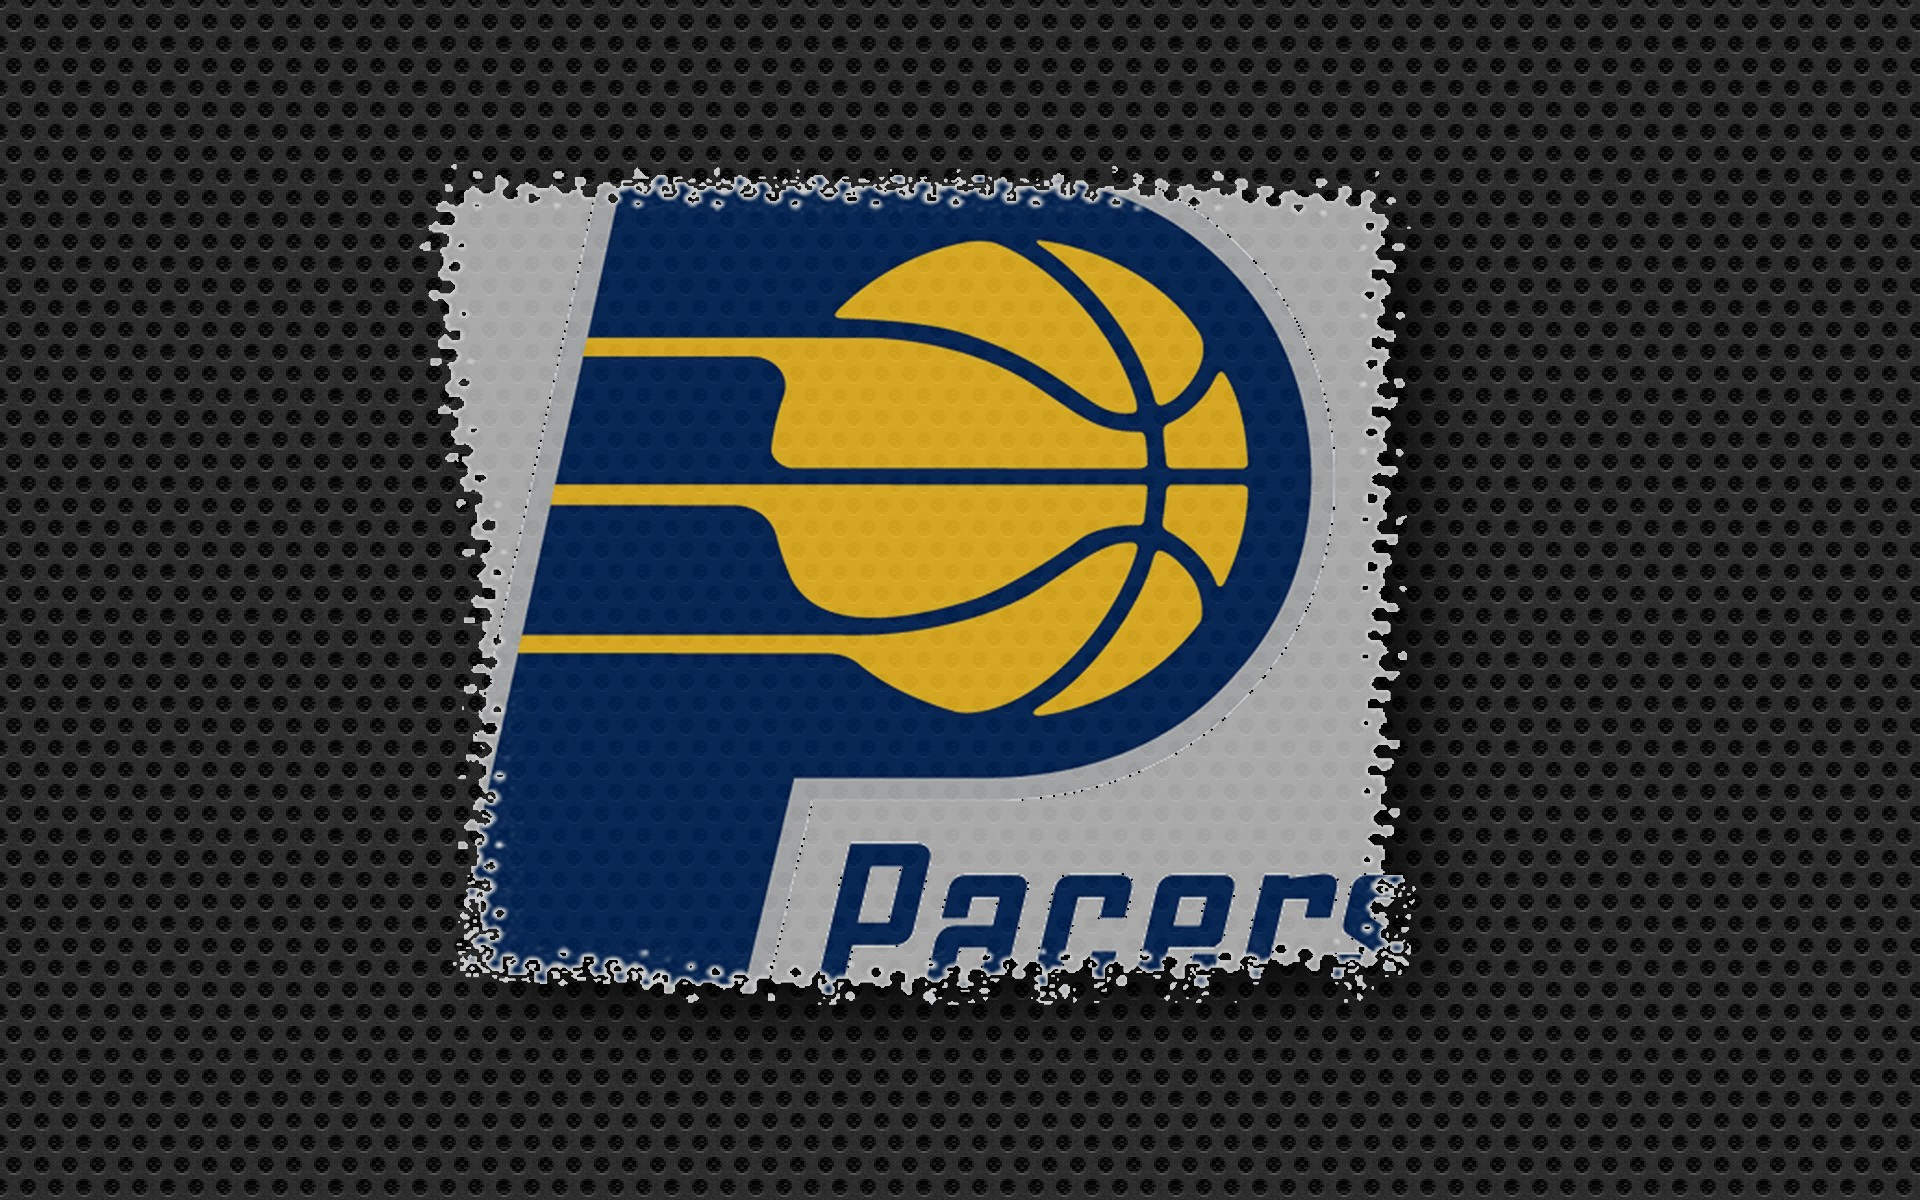 1920x1200 indiana pacers logo on carbon black